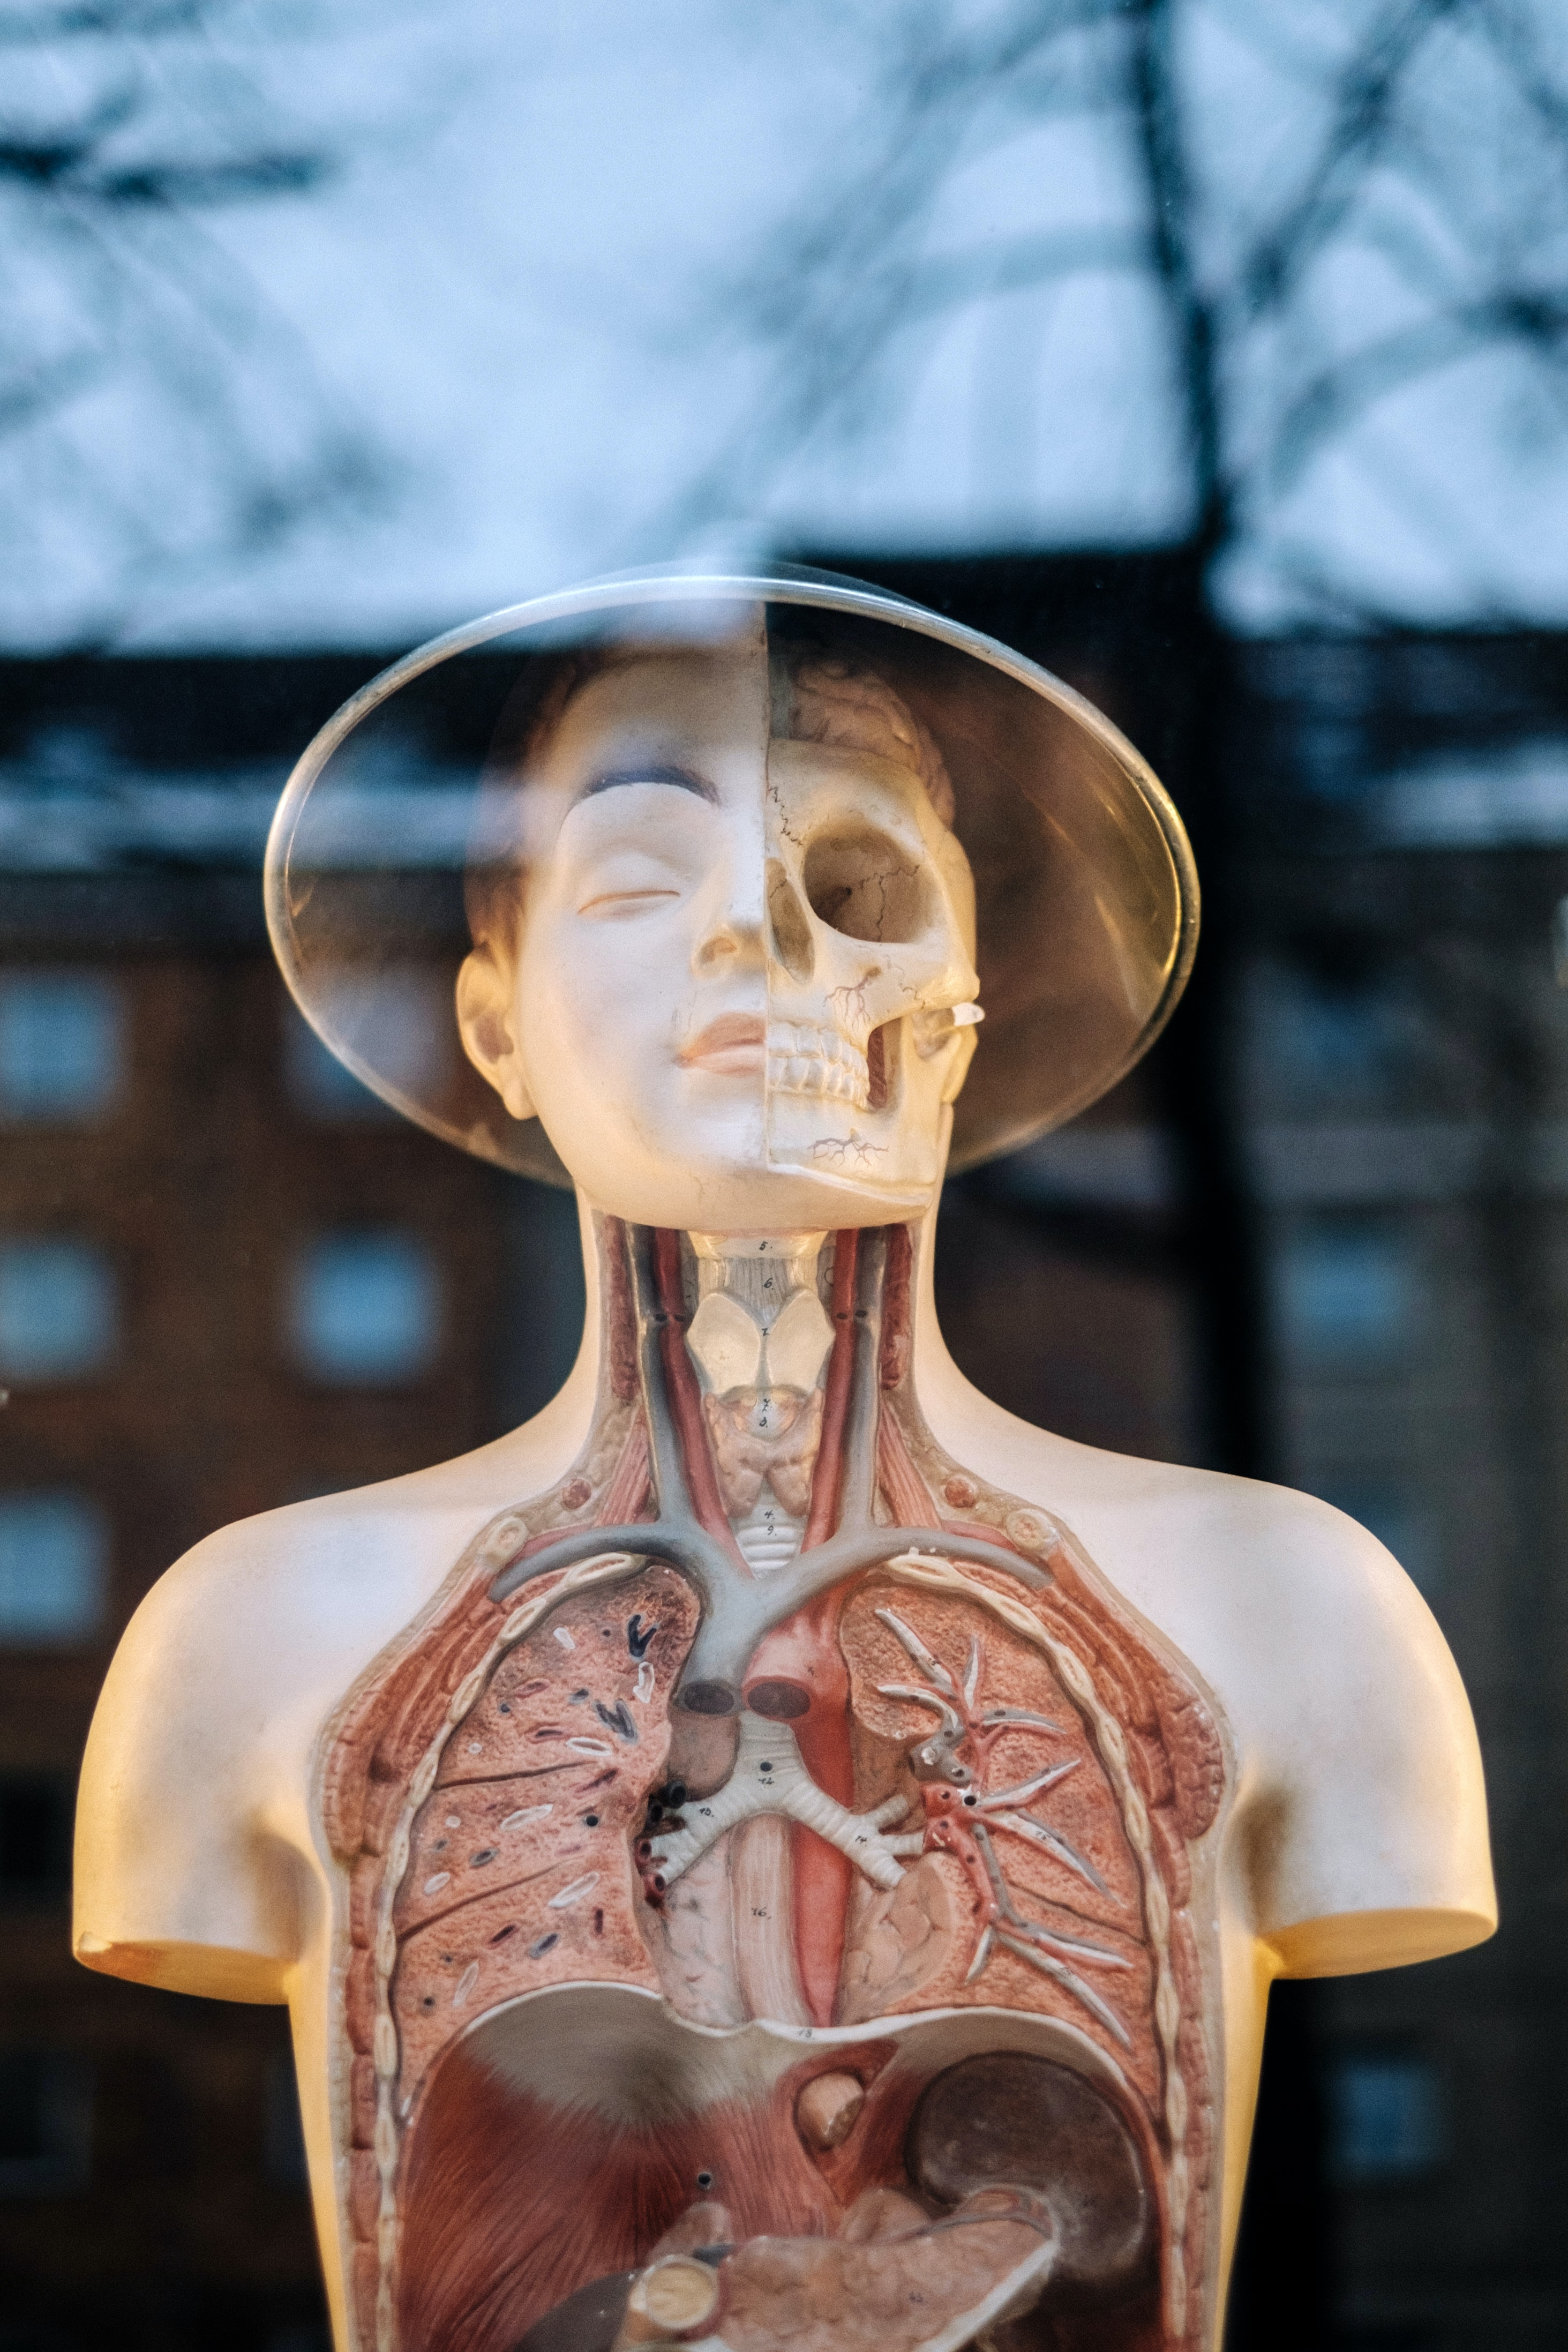 A model of the human body reflected in a window